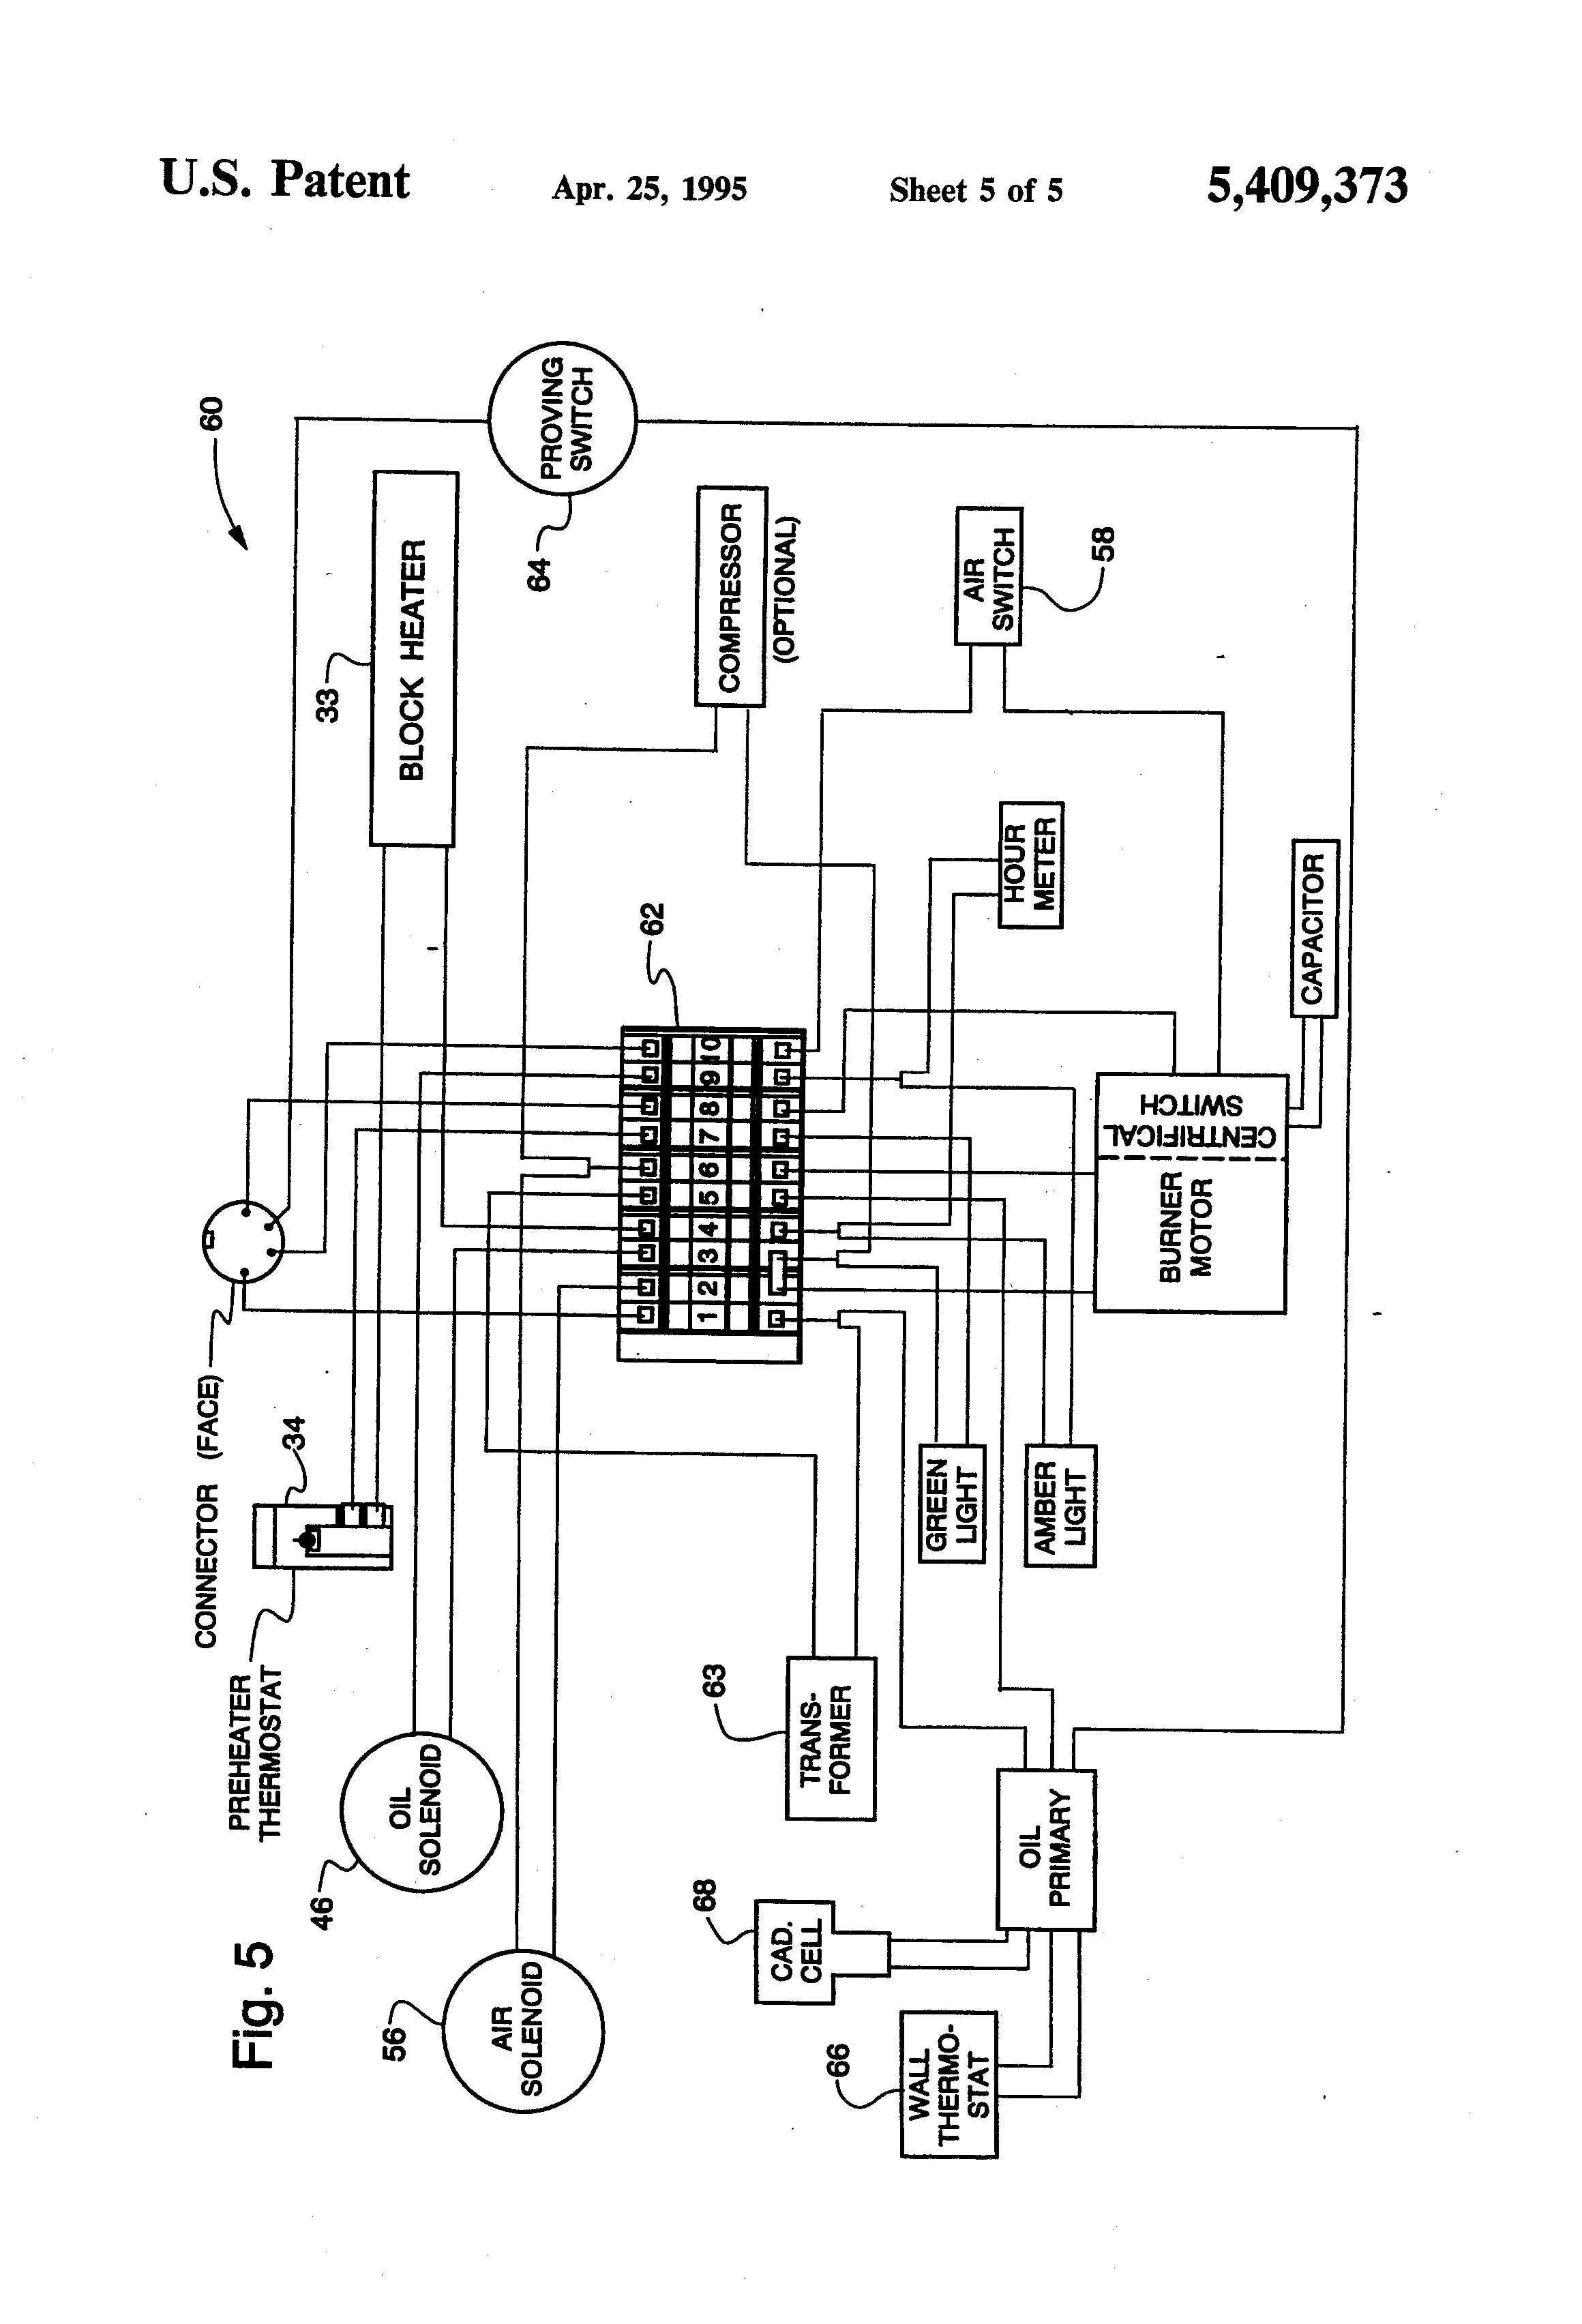 2007 Jeep  mander Starter Wiring Harness furthermore Kia Headlight Wiring Diagram likewise Chevy 1500 5 3 Engine Diagram together with 2004 Gmc Savana Fuse Box Diagram furthermore 2002 Dodge Ram 1500 Transmission Diagram. on liberty thermostat location free wiring diagram schematic